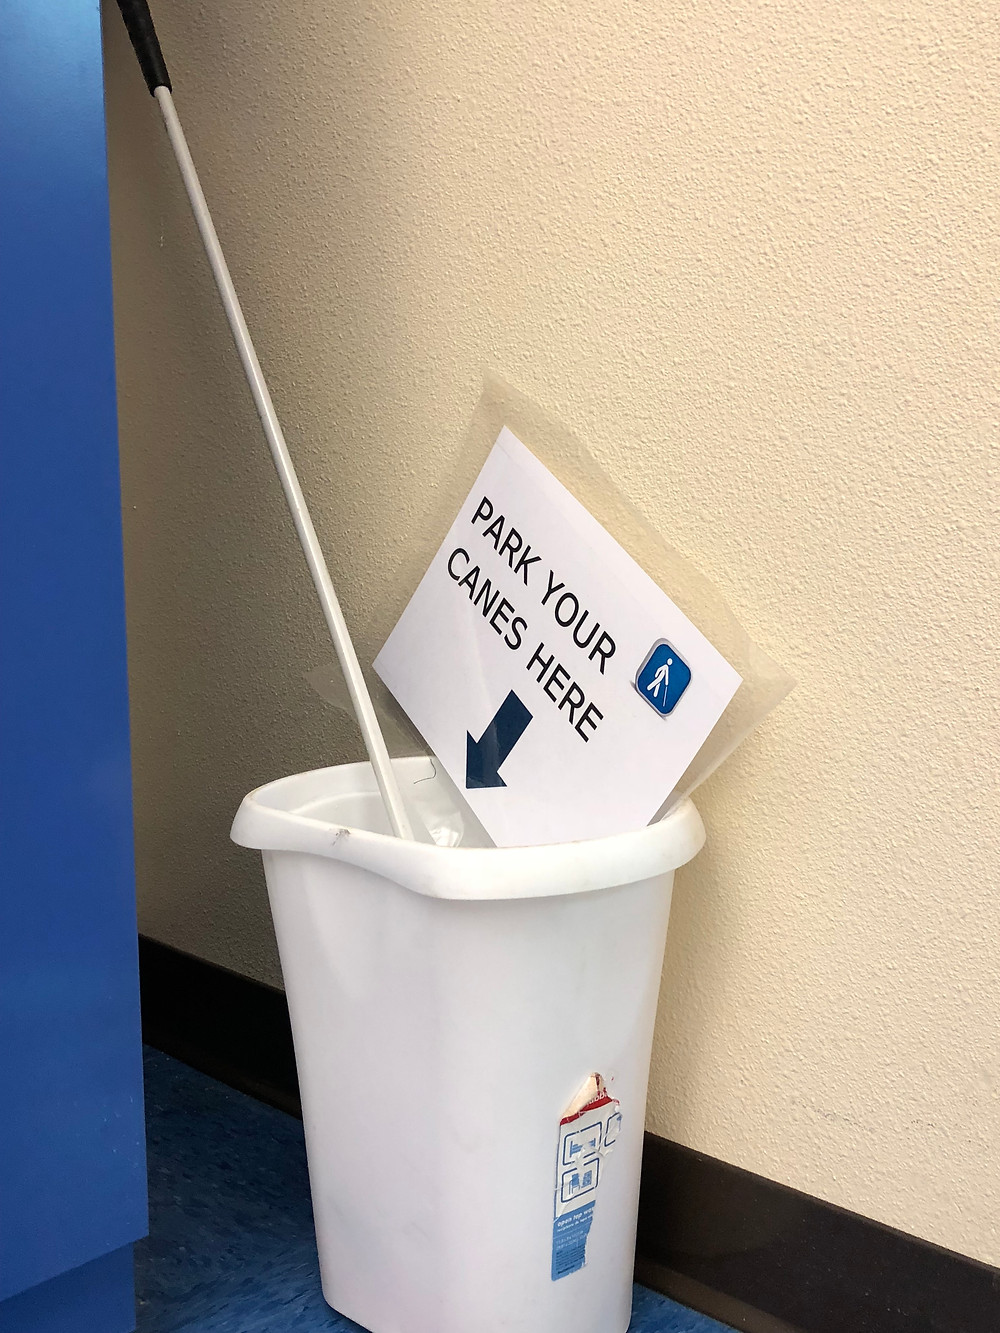 A white trash can holds a white cane. A sign reads park your canes here.